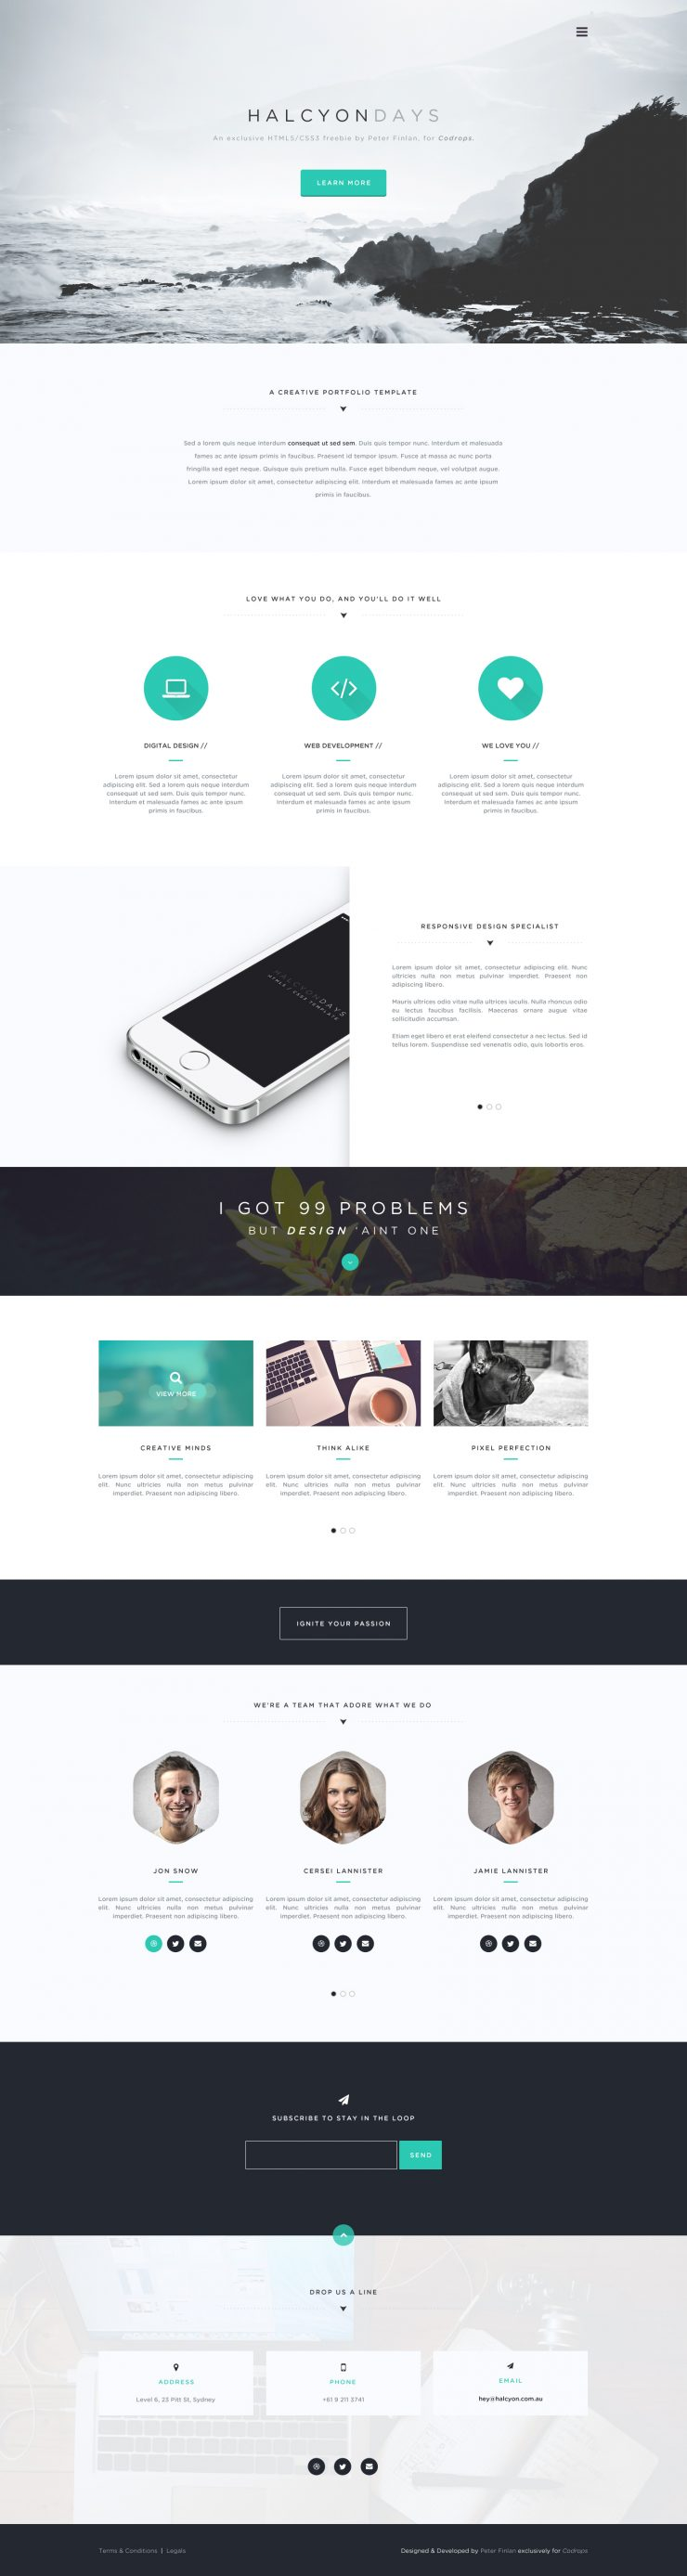 Creative Portfolio Template Free PSD www, White, Website Template, Website Layout, Website, webpage, Web Template, Web Resources, web page, Web Layout, Web Interface, Web Elements, Web Design, Web, User Interface, unique, UI, Template, Stylish, Simple, Resources, Quality, Psd Templates, Portfolio, pack, original, new, Modern, Fresh, Elements, detailed, Design, Creative, Corporate, company, Clean,